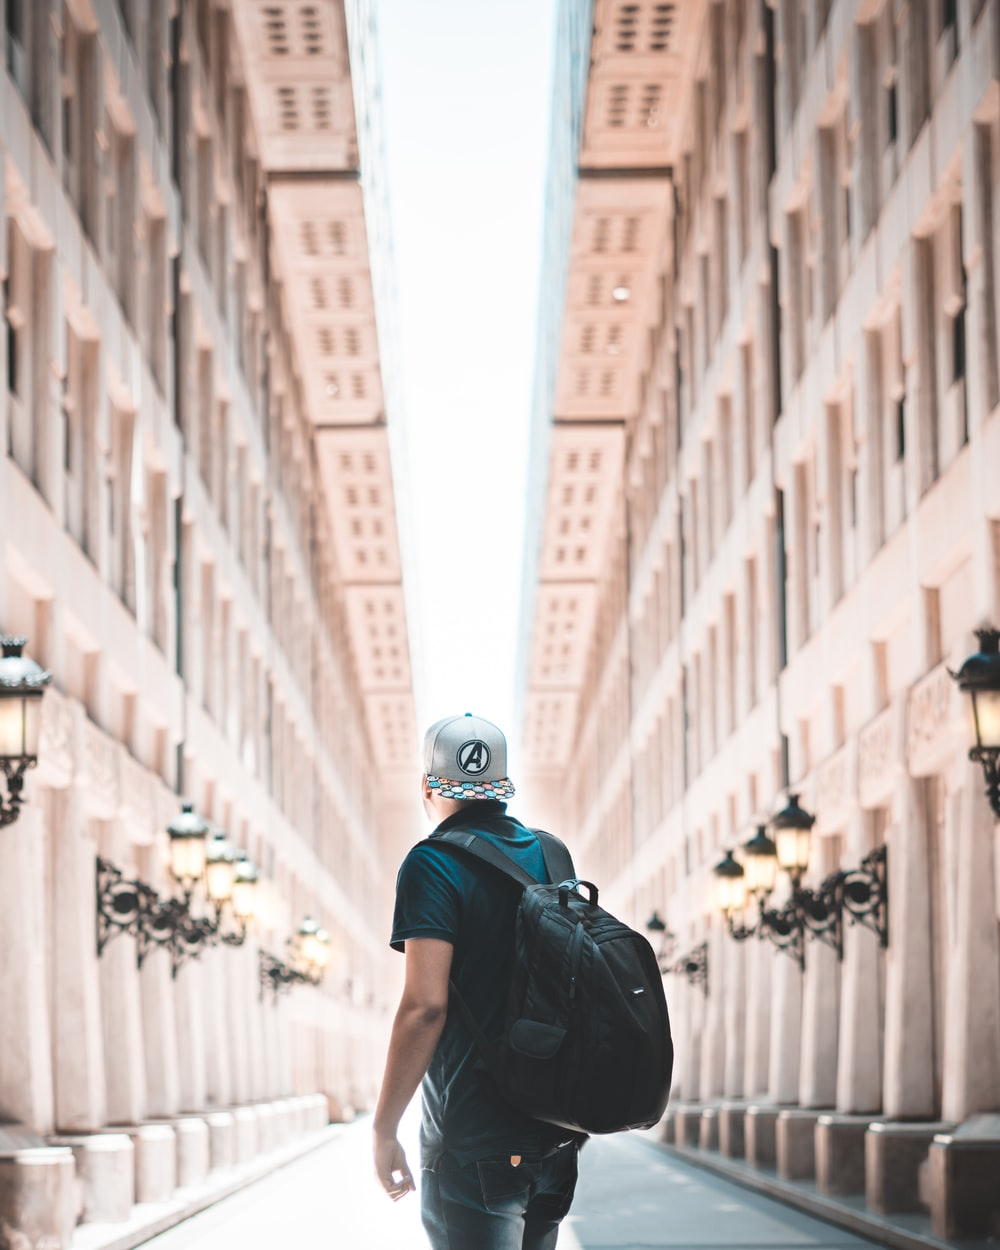 man in black shirt wearing white cap and backpack standing in front of brown concrete building